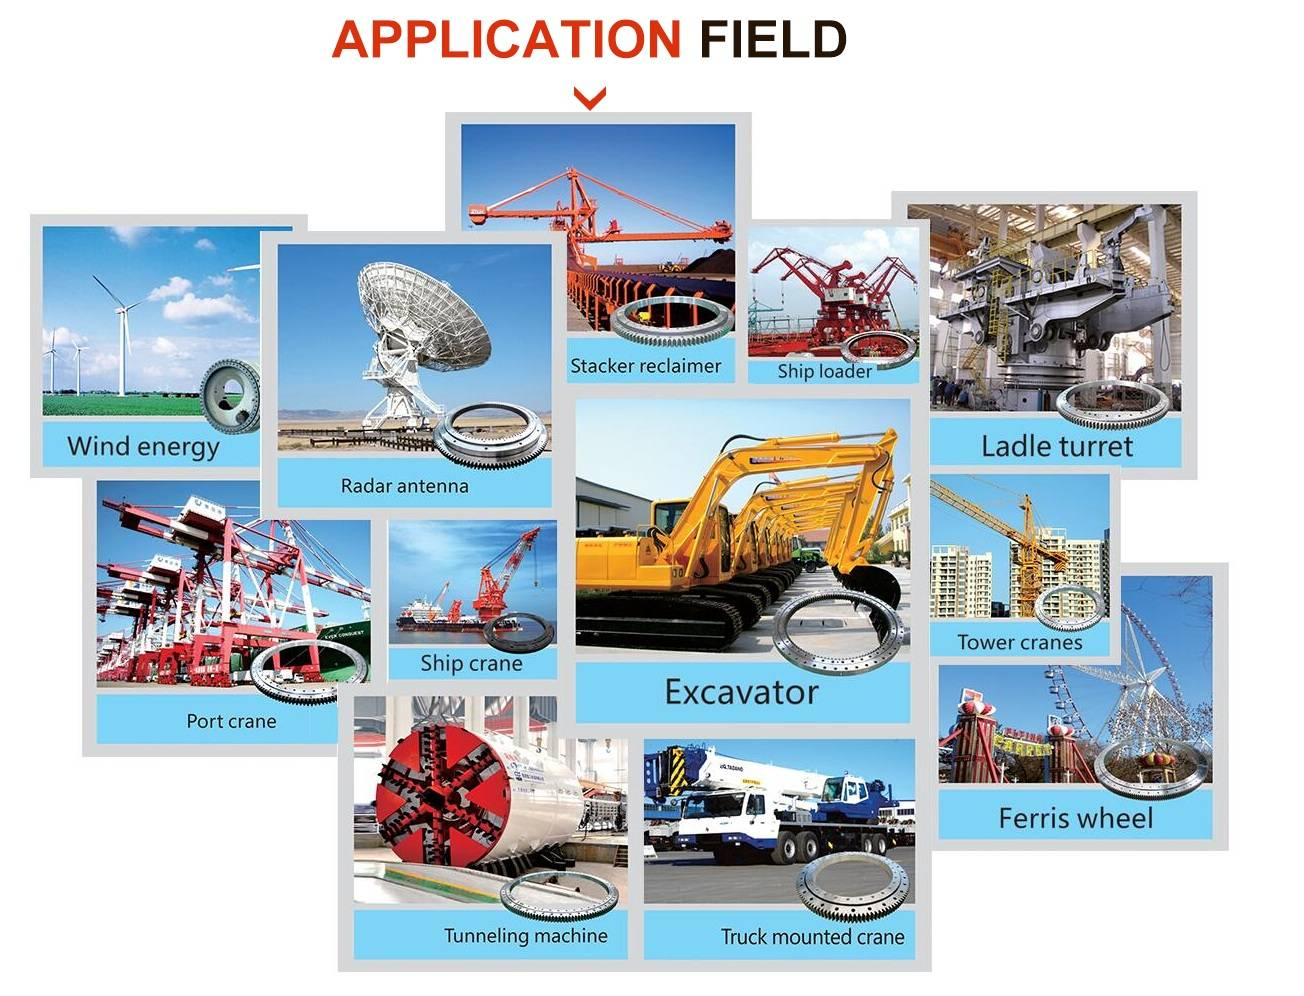 Application field